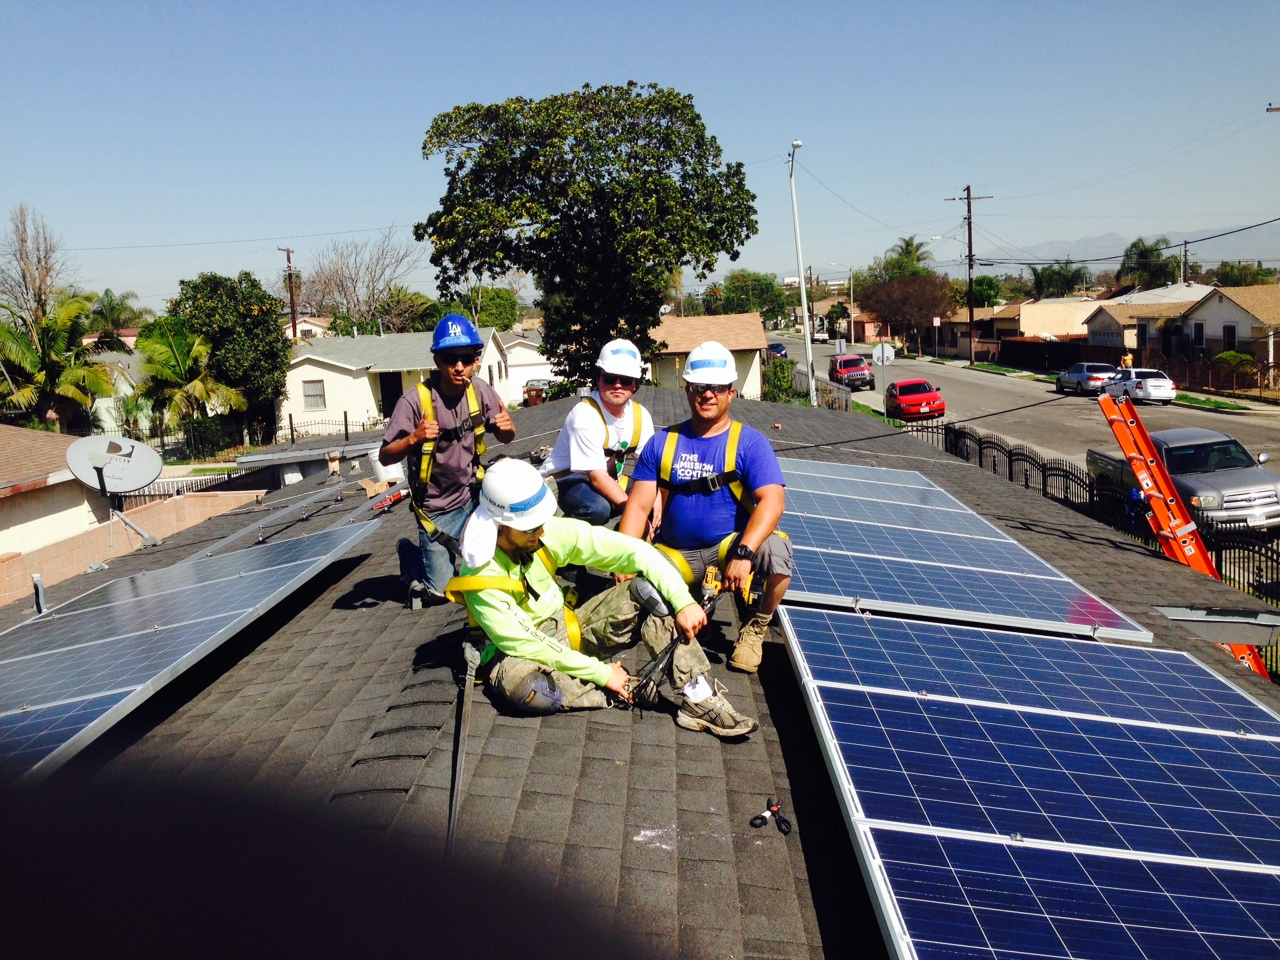 Veterans installing solar on a rooftop in Southern California